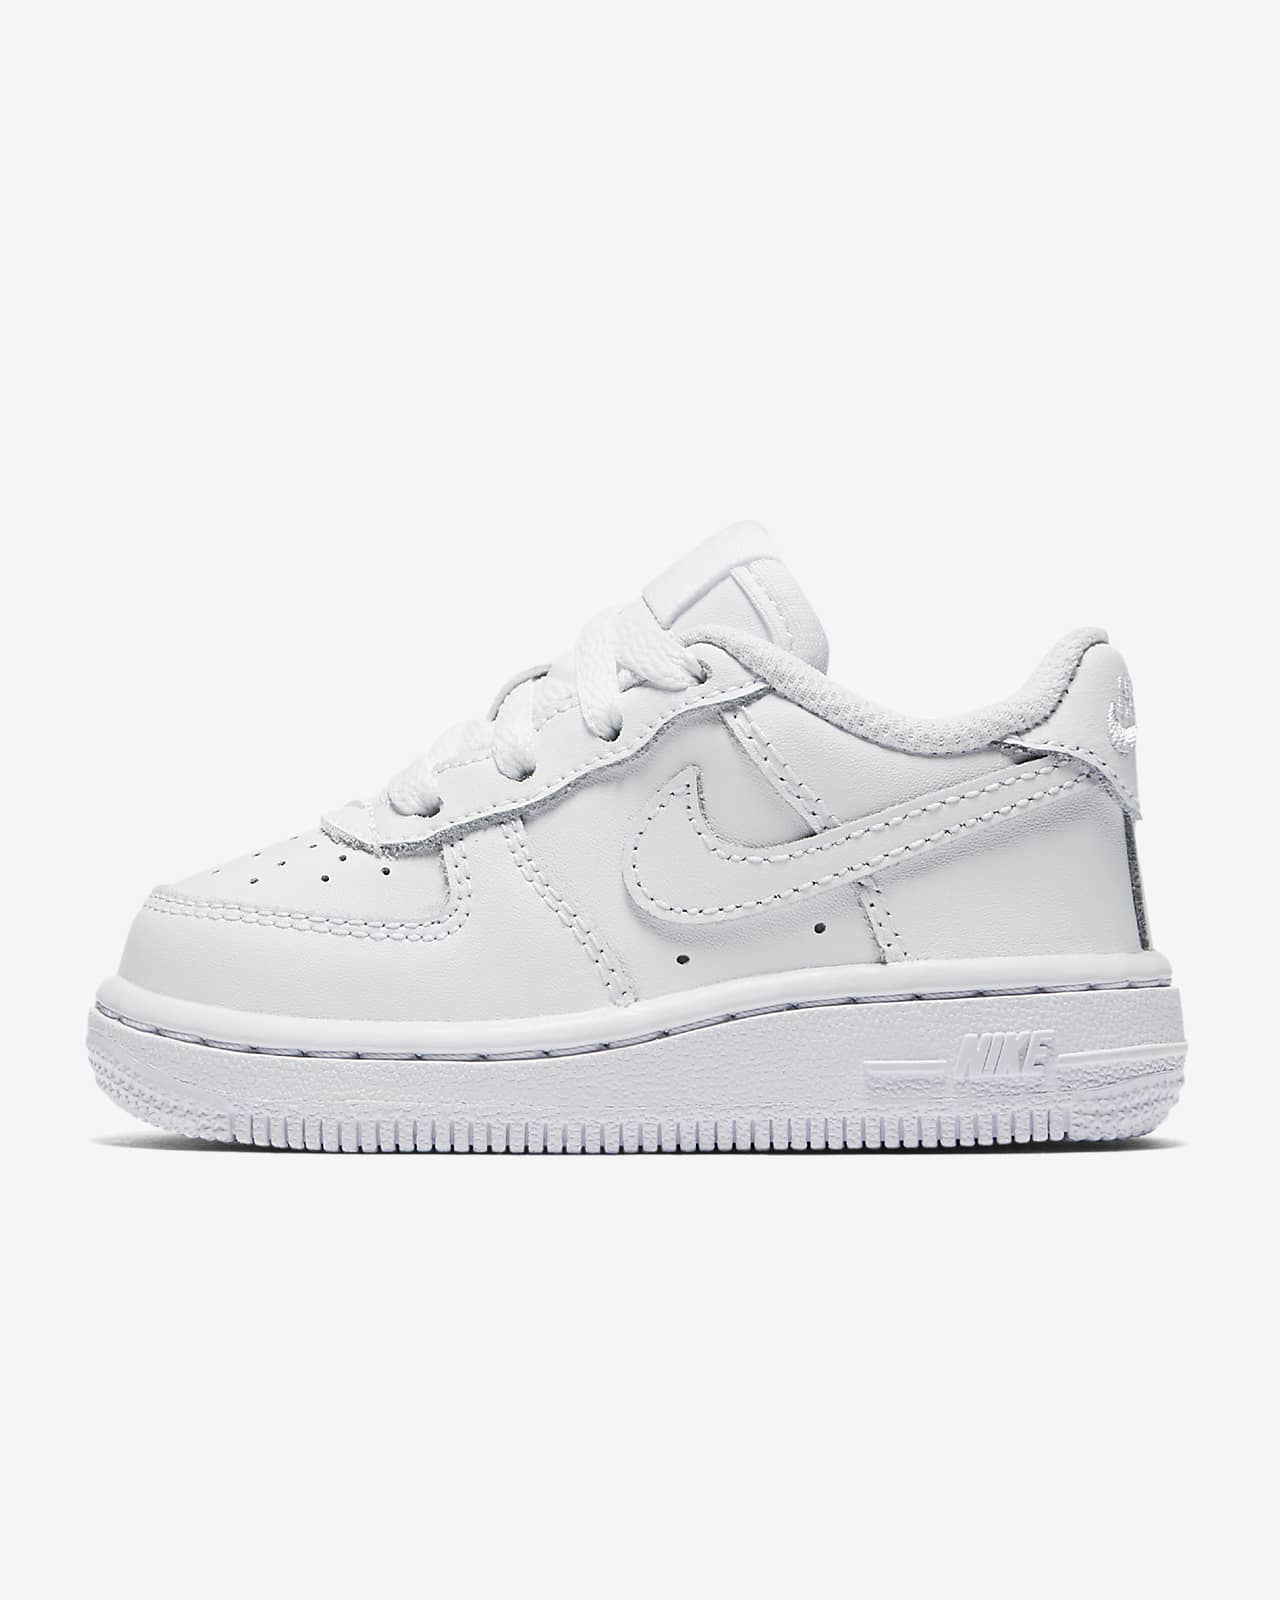 Nike Air Force I 06 Infant/Toddler Shoe